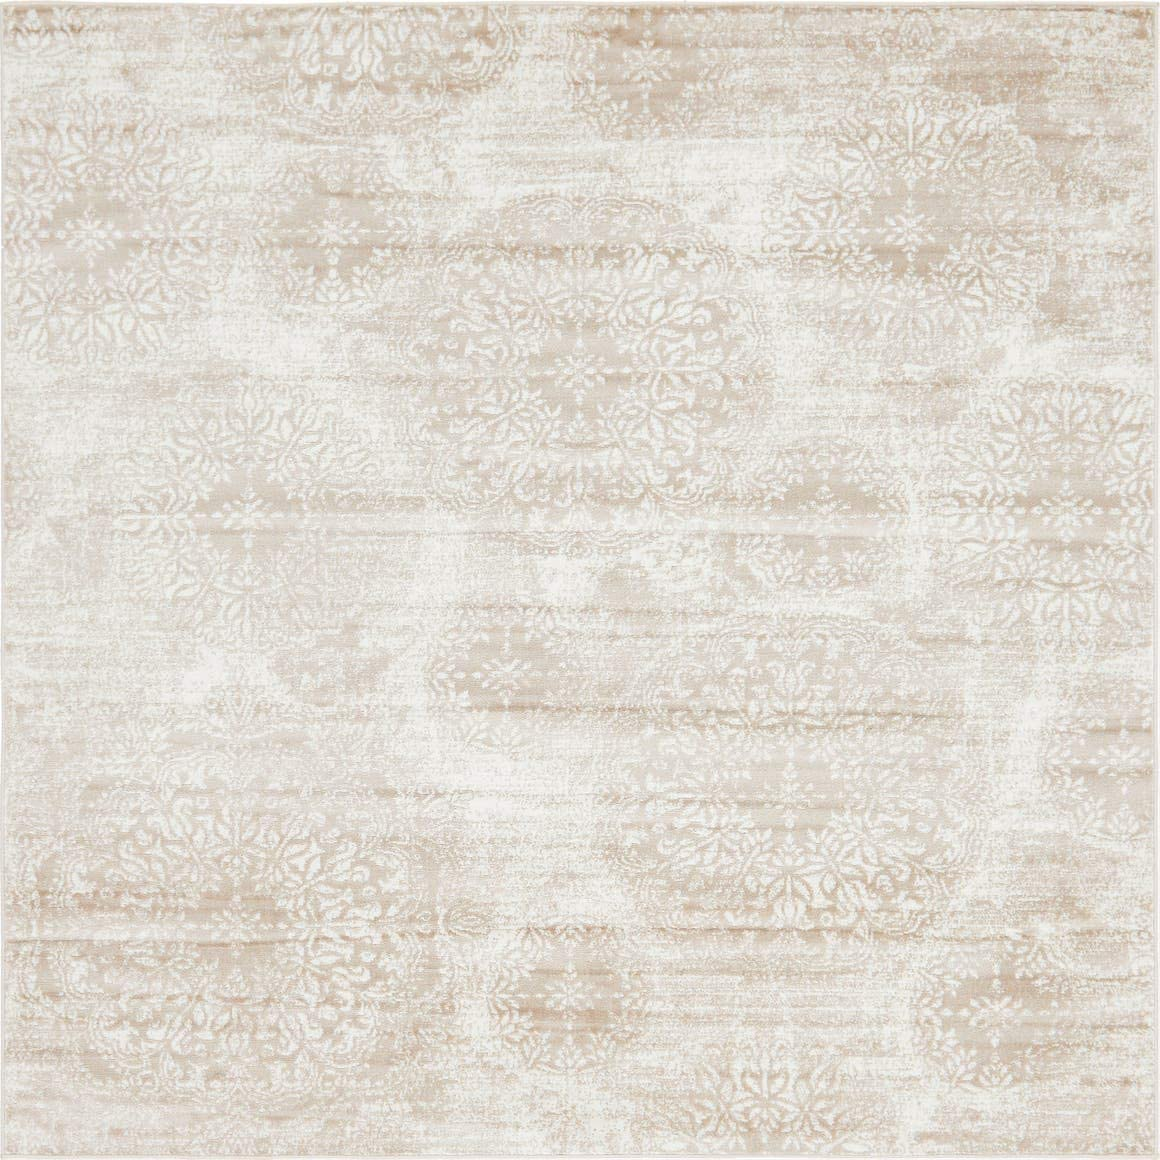 Unique Loom 3141518 Sofia Collection Traditional Vintage Beige Square Rug 8 0 x 8 0